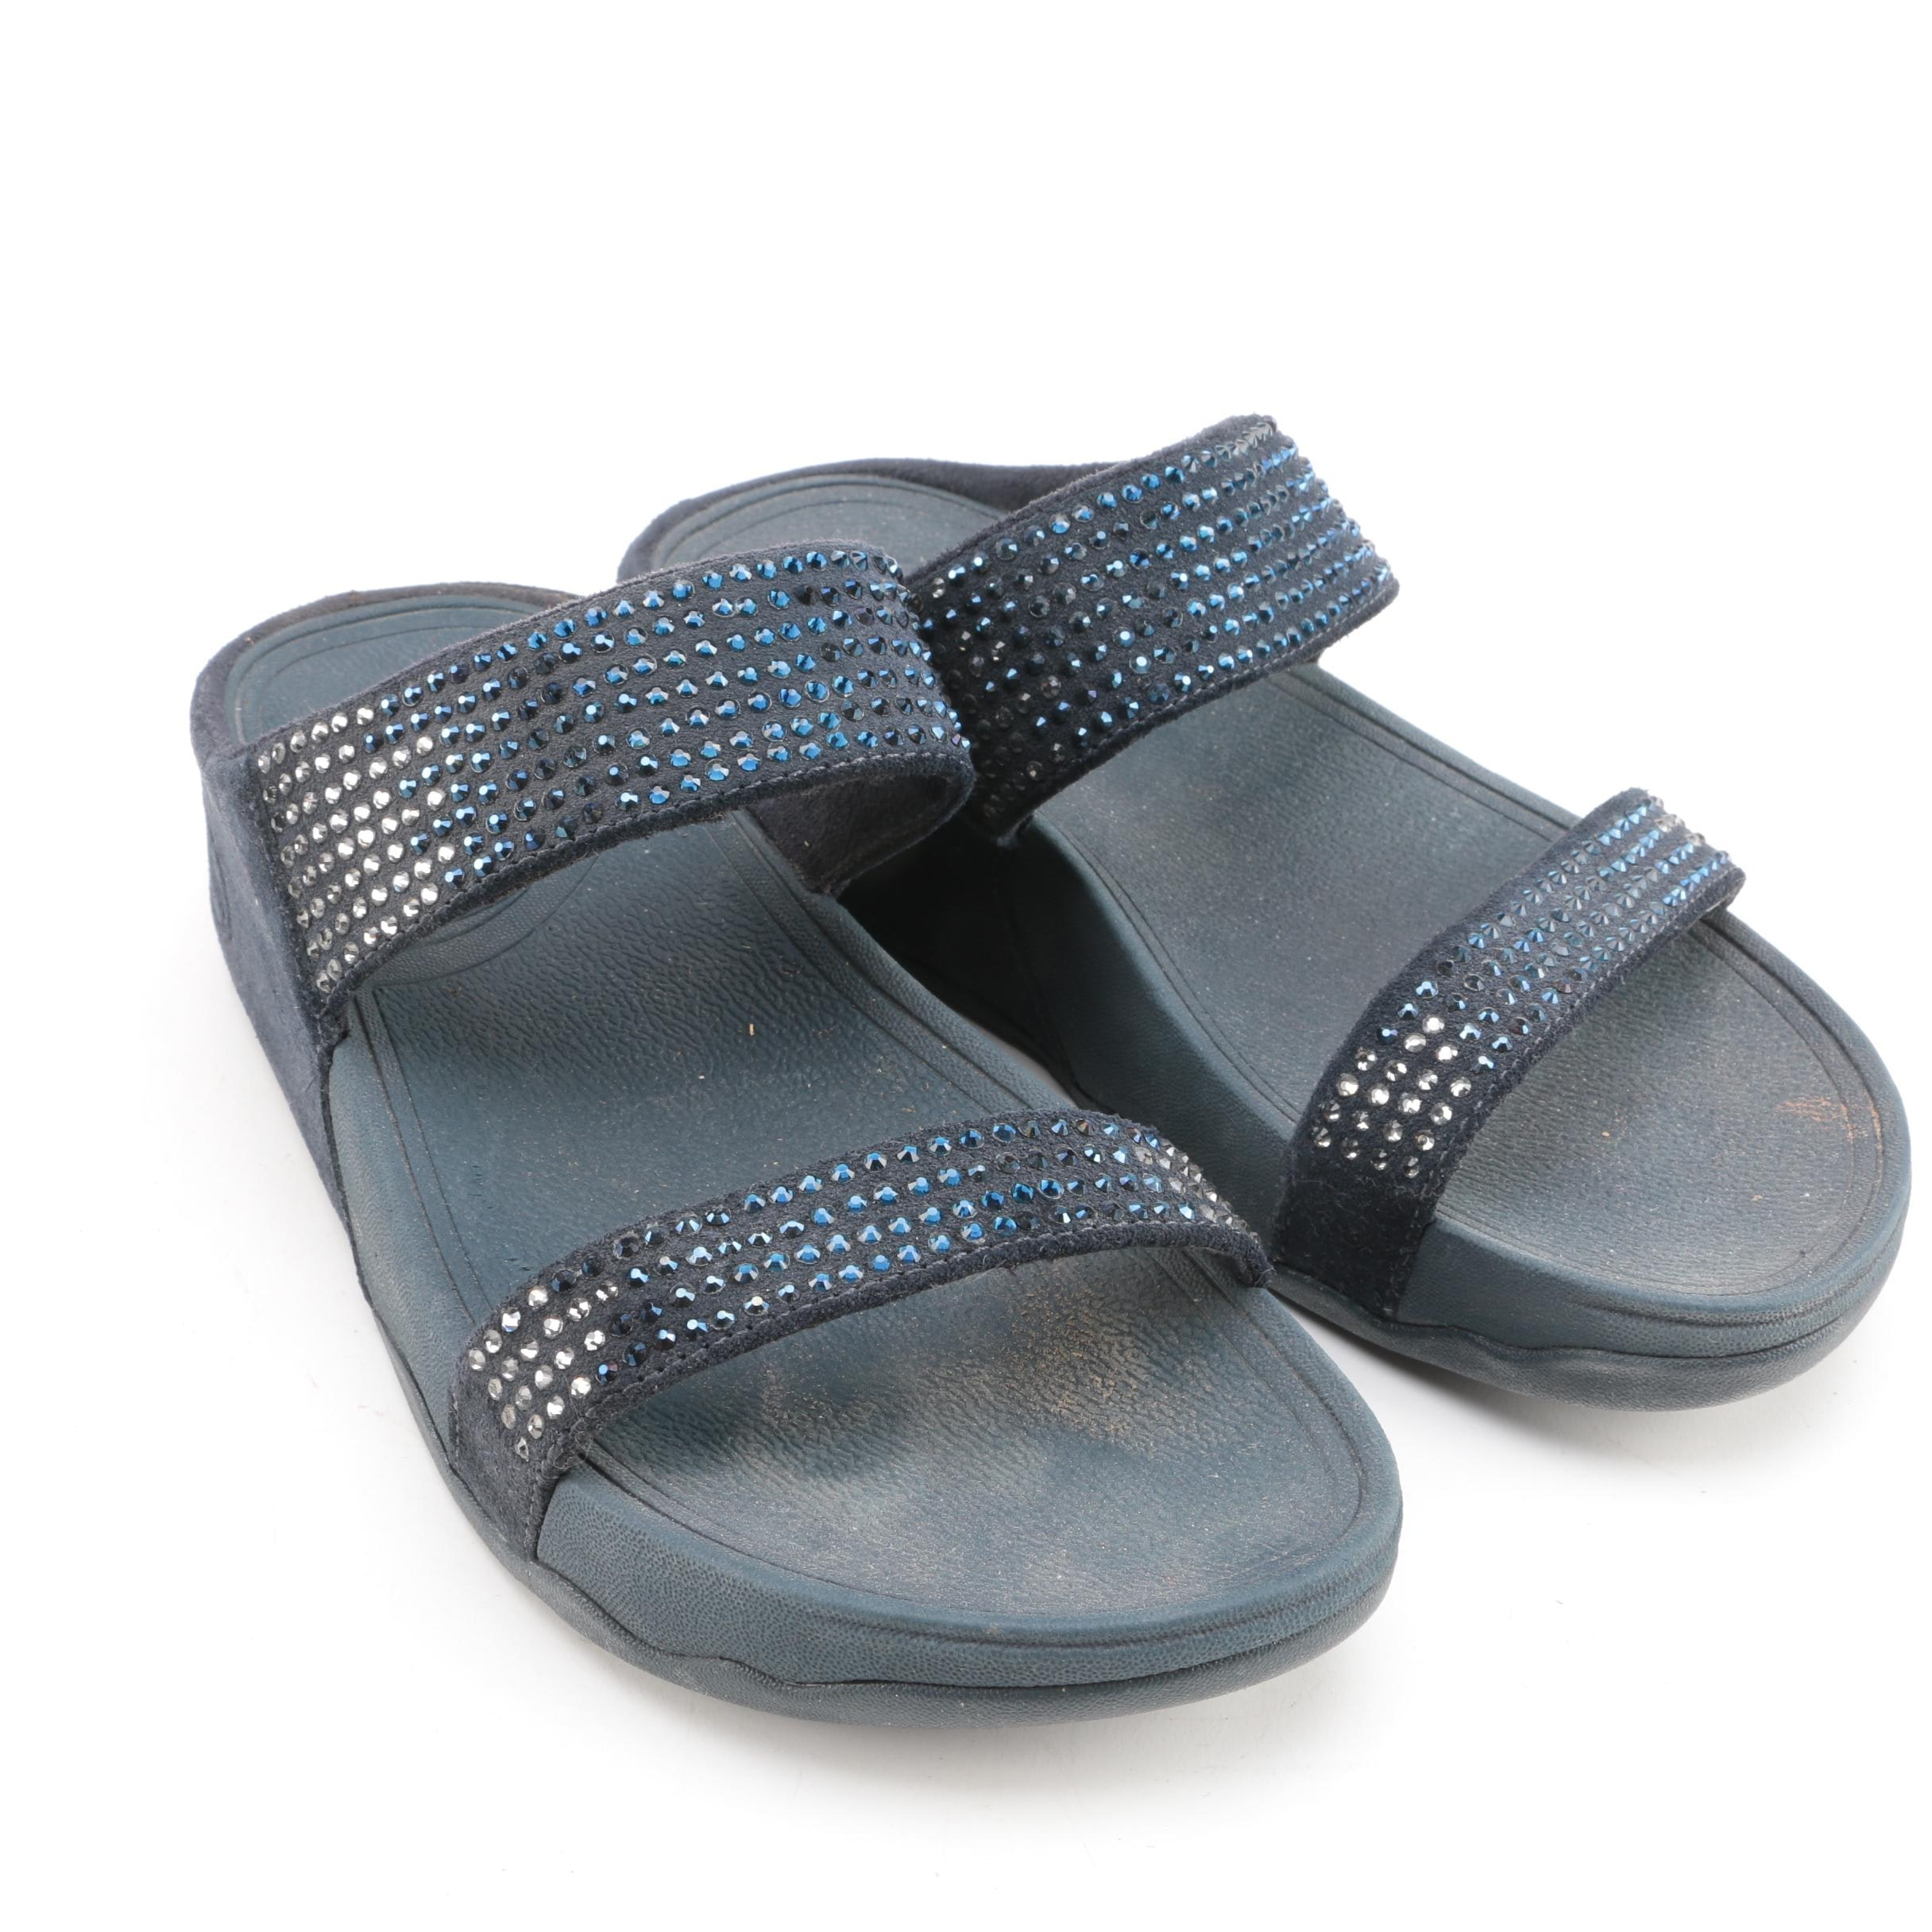 Fitflop Wedge Shoes